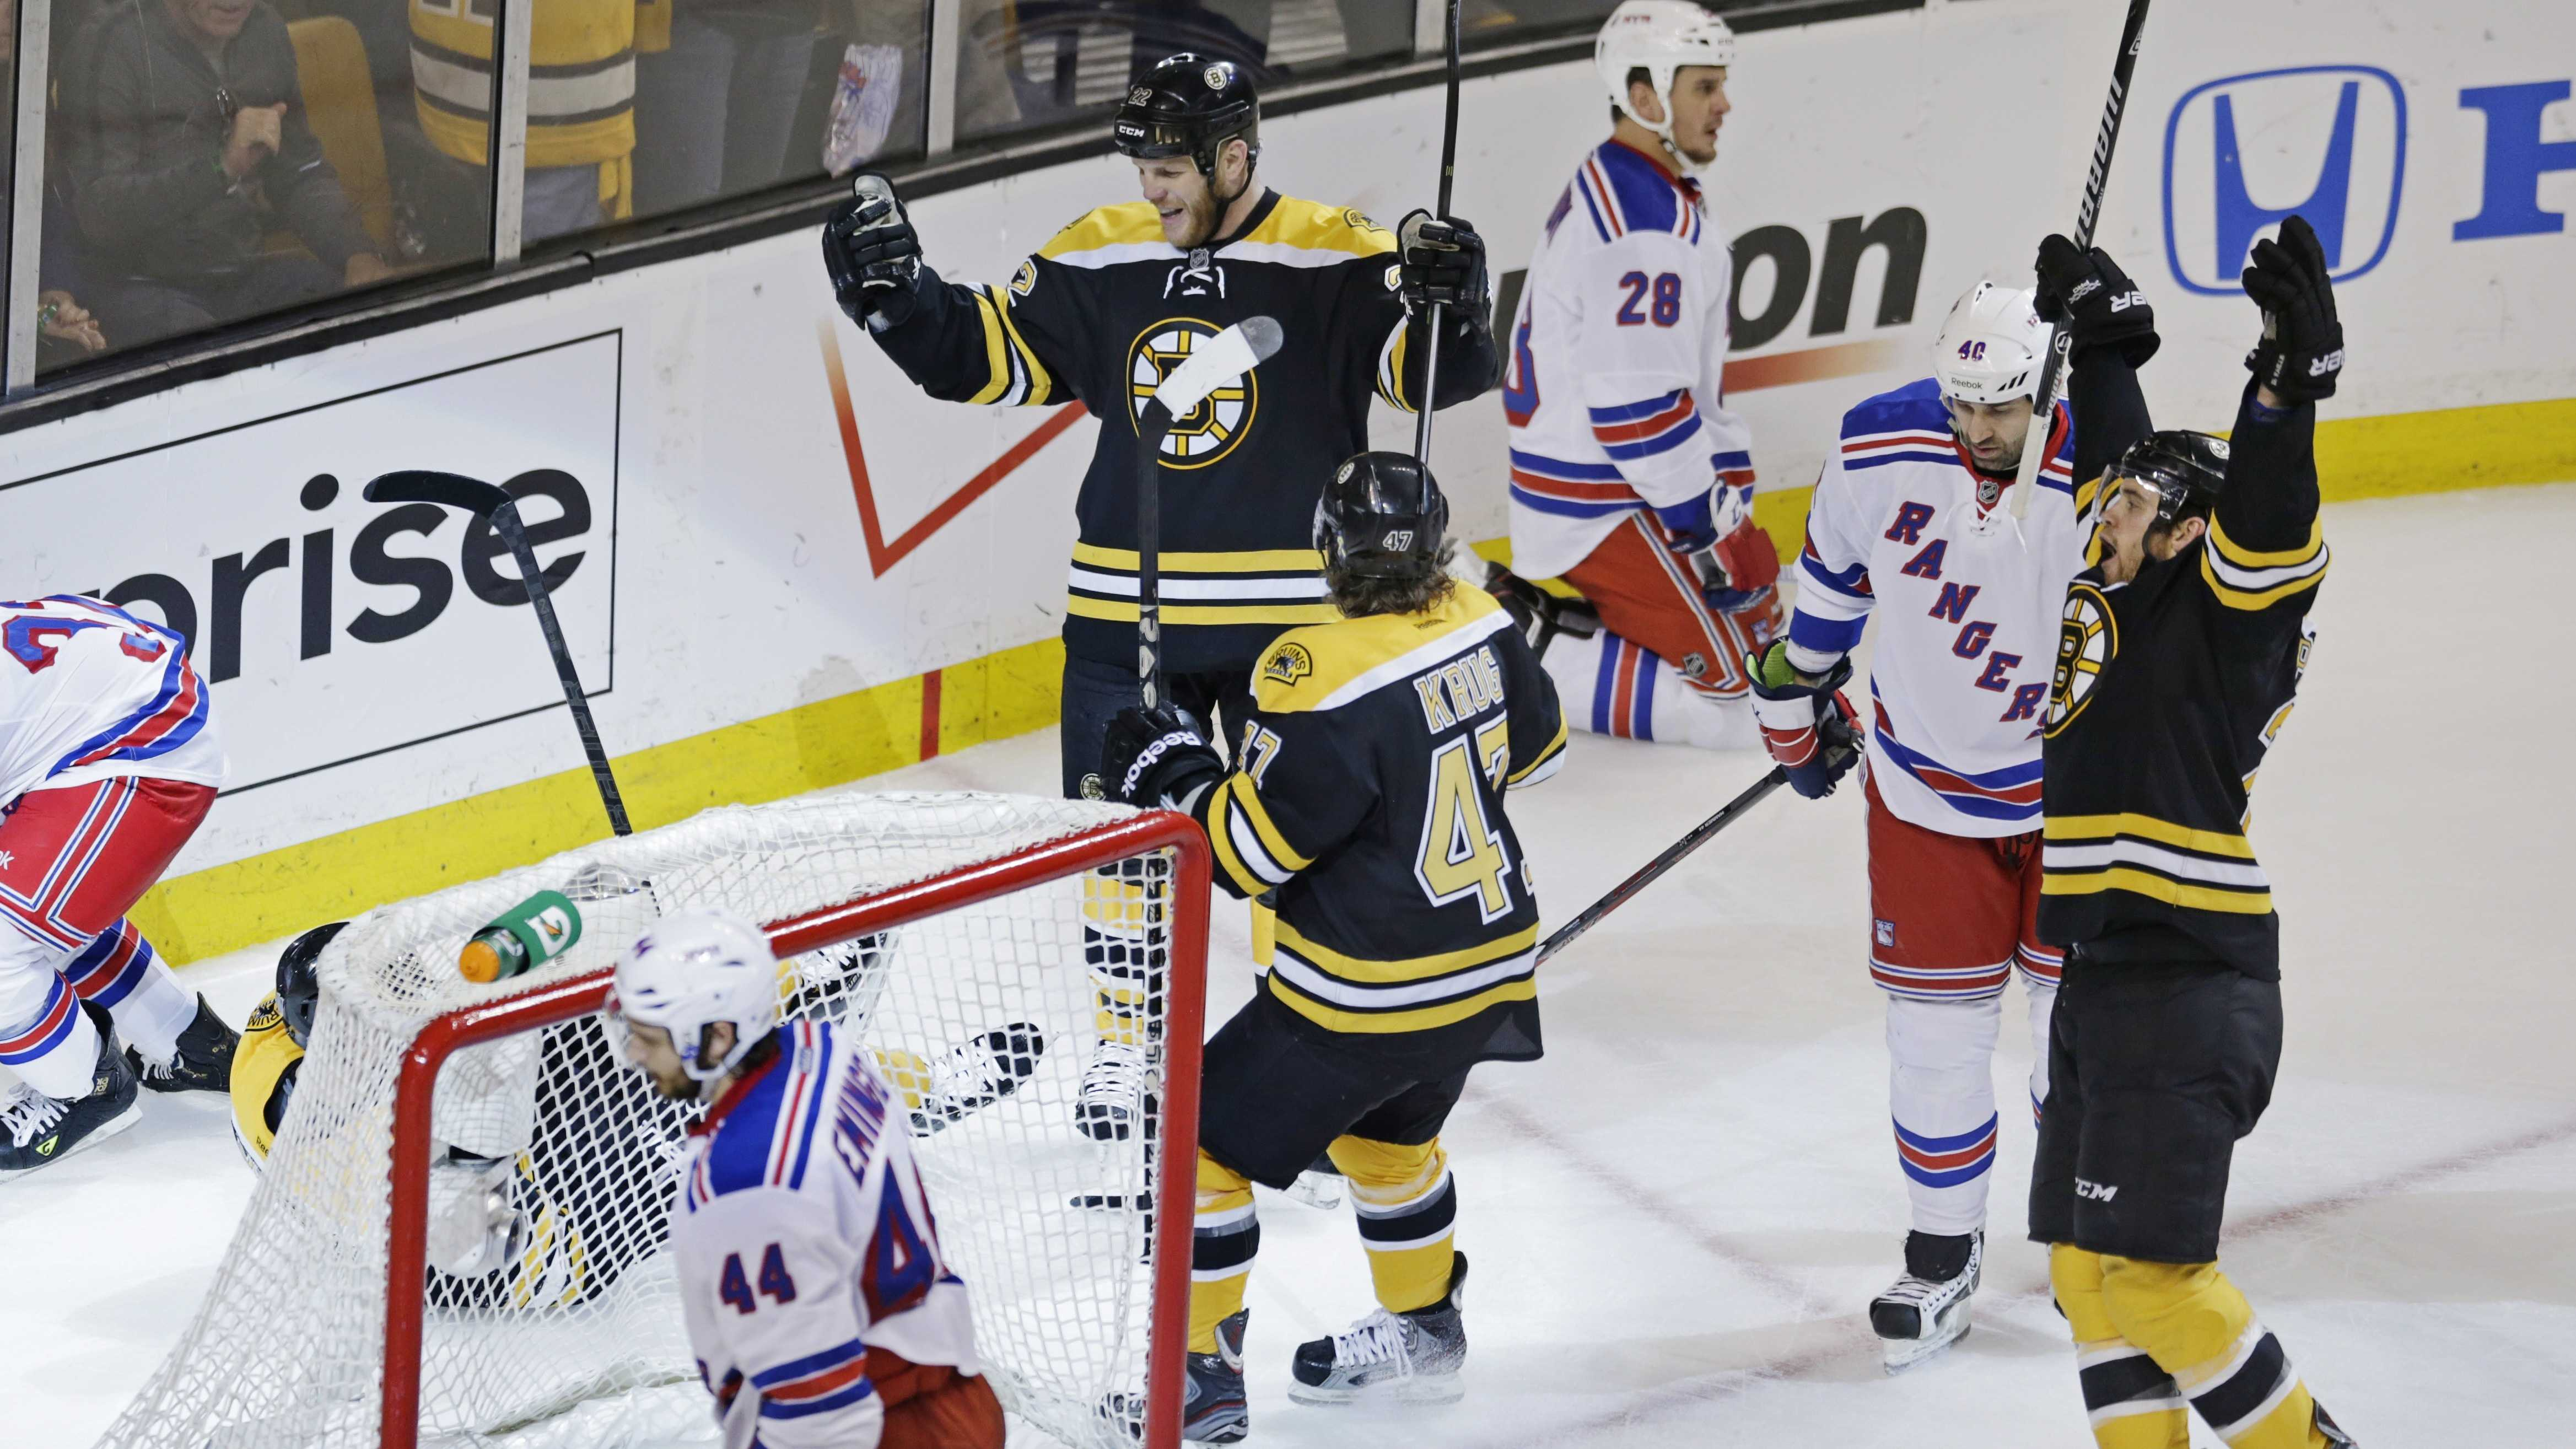 Boston Bruins center Gregory Campbell falls behind the goal as his teammates celebrate after his goal against the New York Rangers.